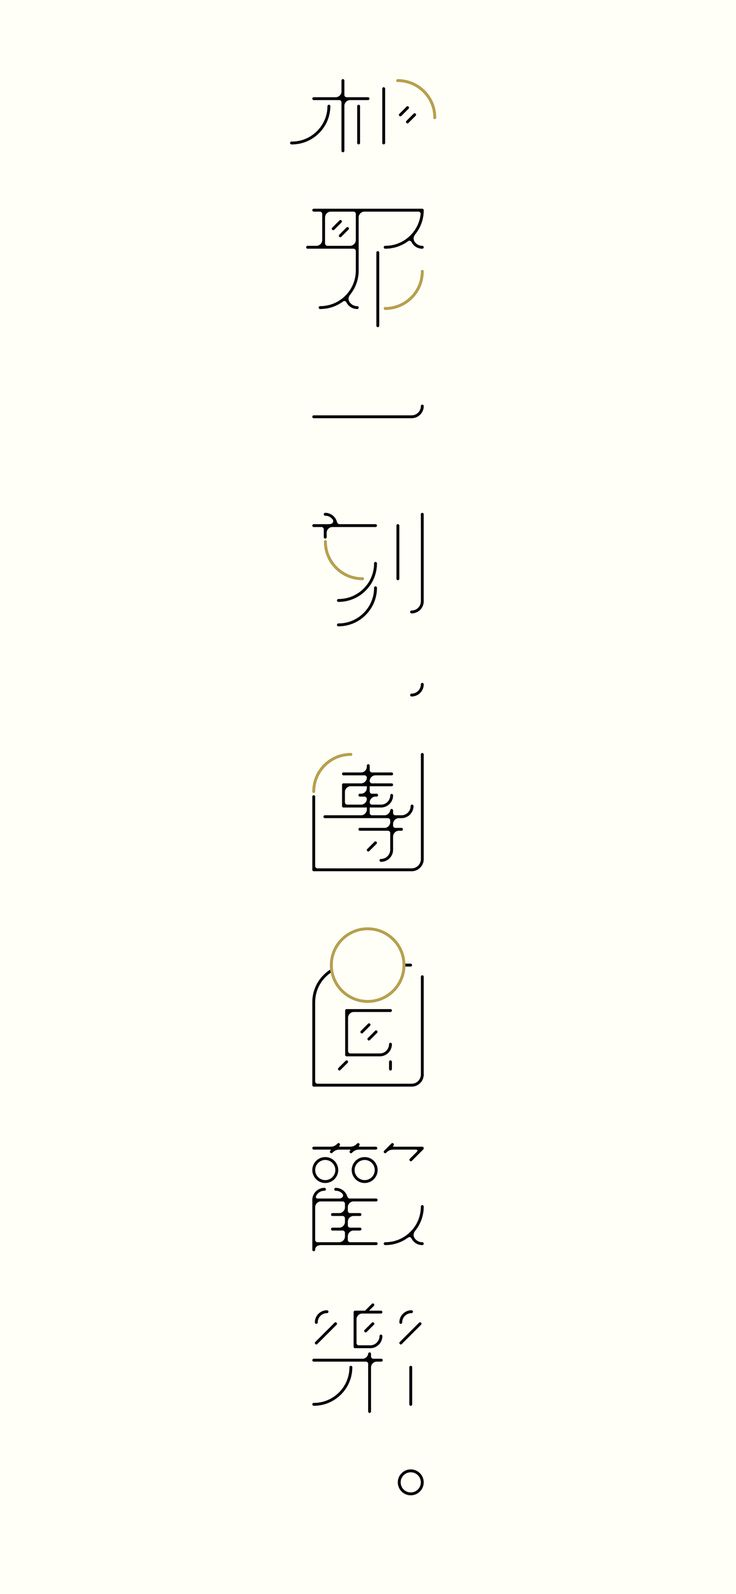 相聚(together)一刻(quarter),團圓(Reunion )歡樂(happy)。 on Behance